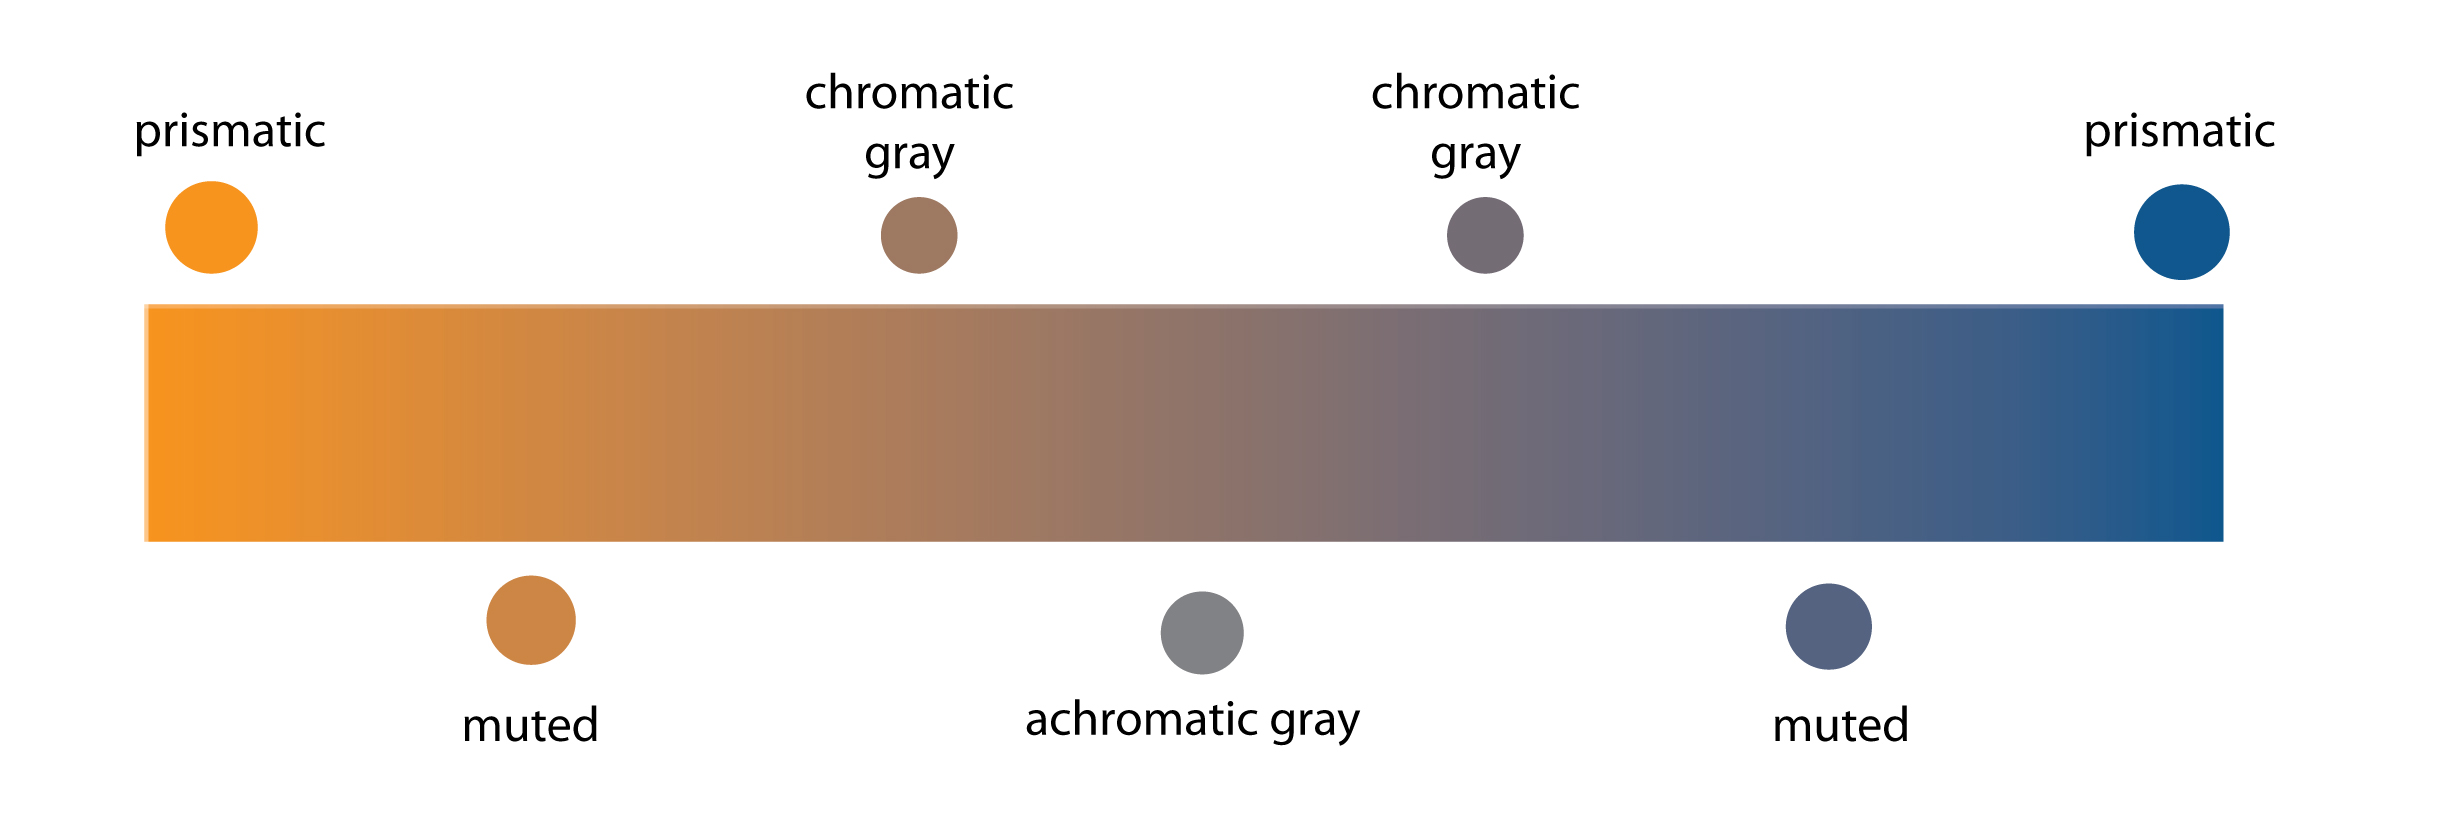 Comd Class 19 Chromatic Gray Color Studies Graphic Design